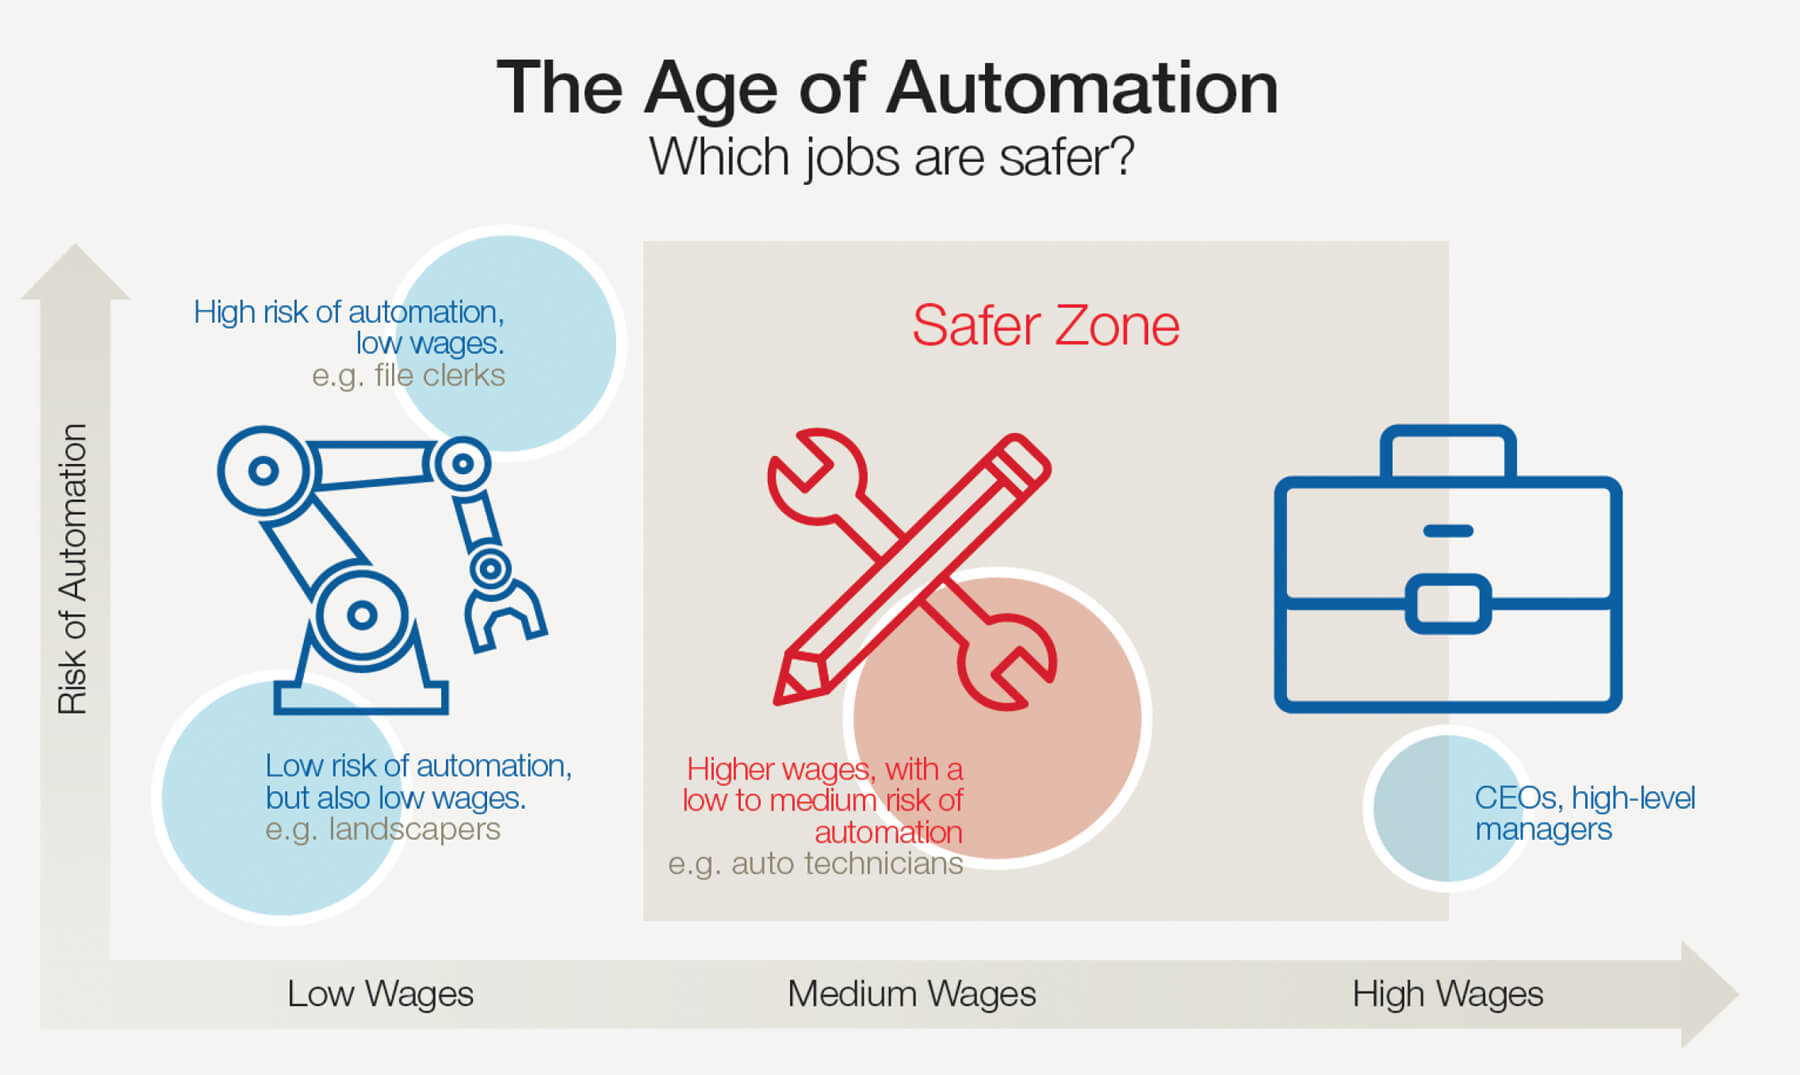 The Age of Automation Infographic